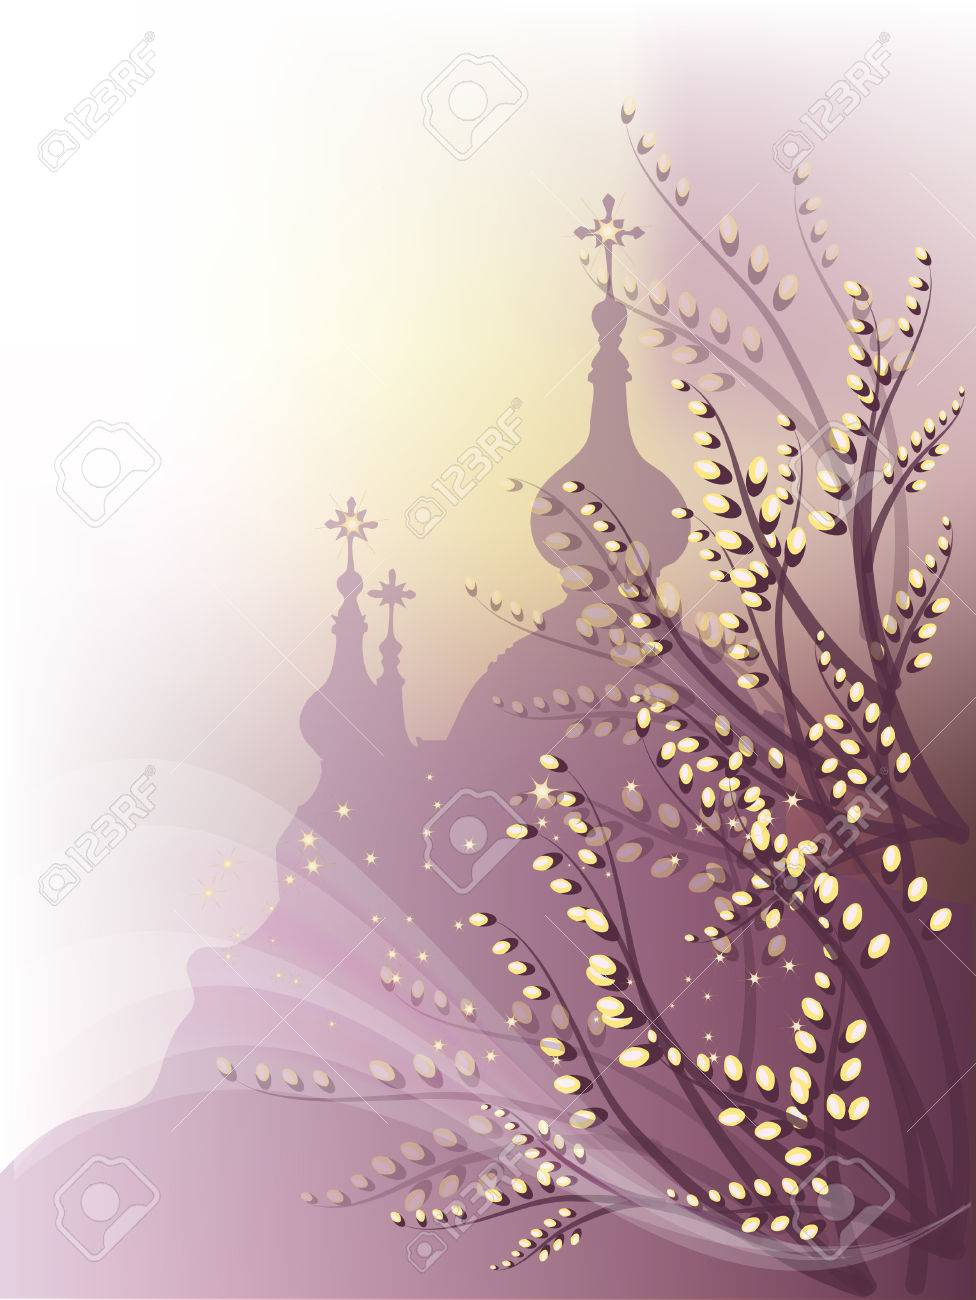 Spring background with pussy-willow and orthodox churches outline. Stock Vector - 8524379